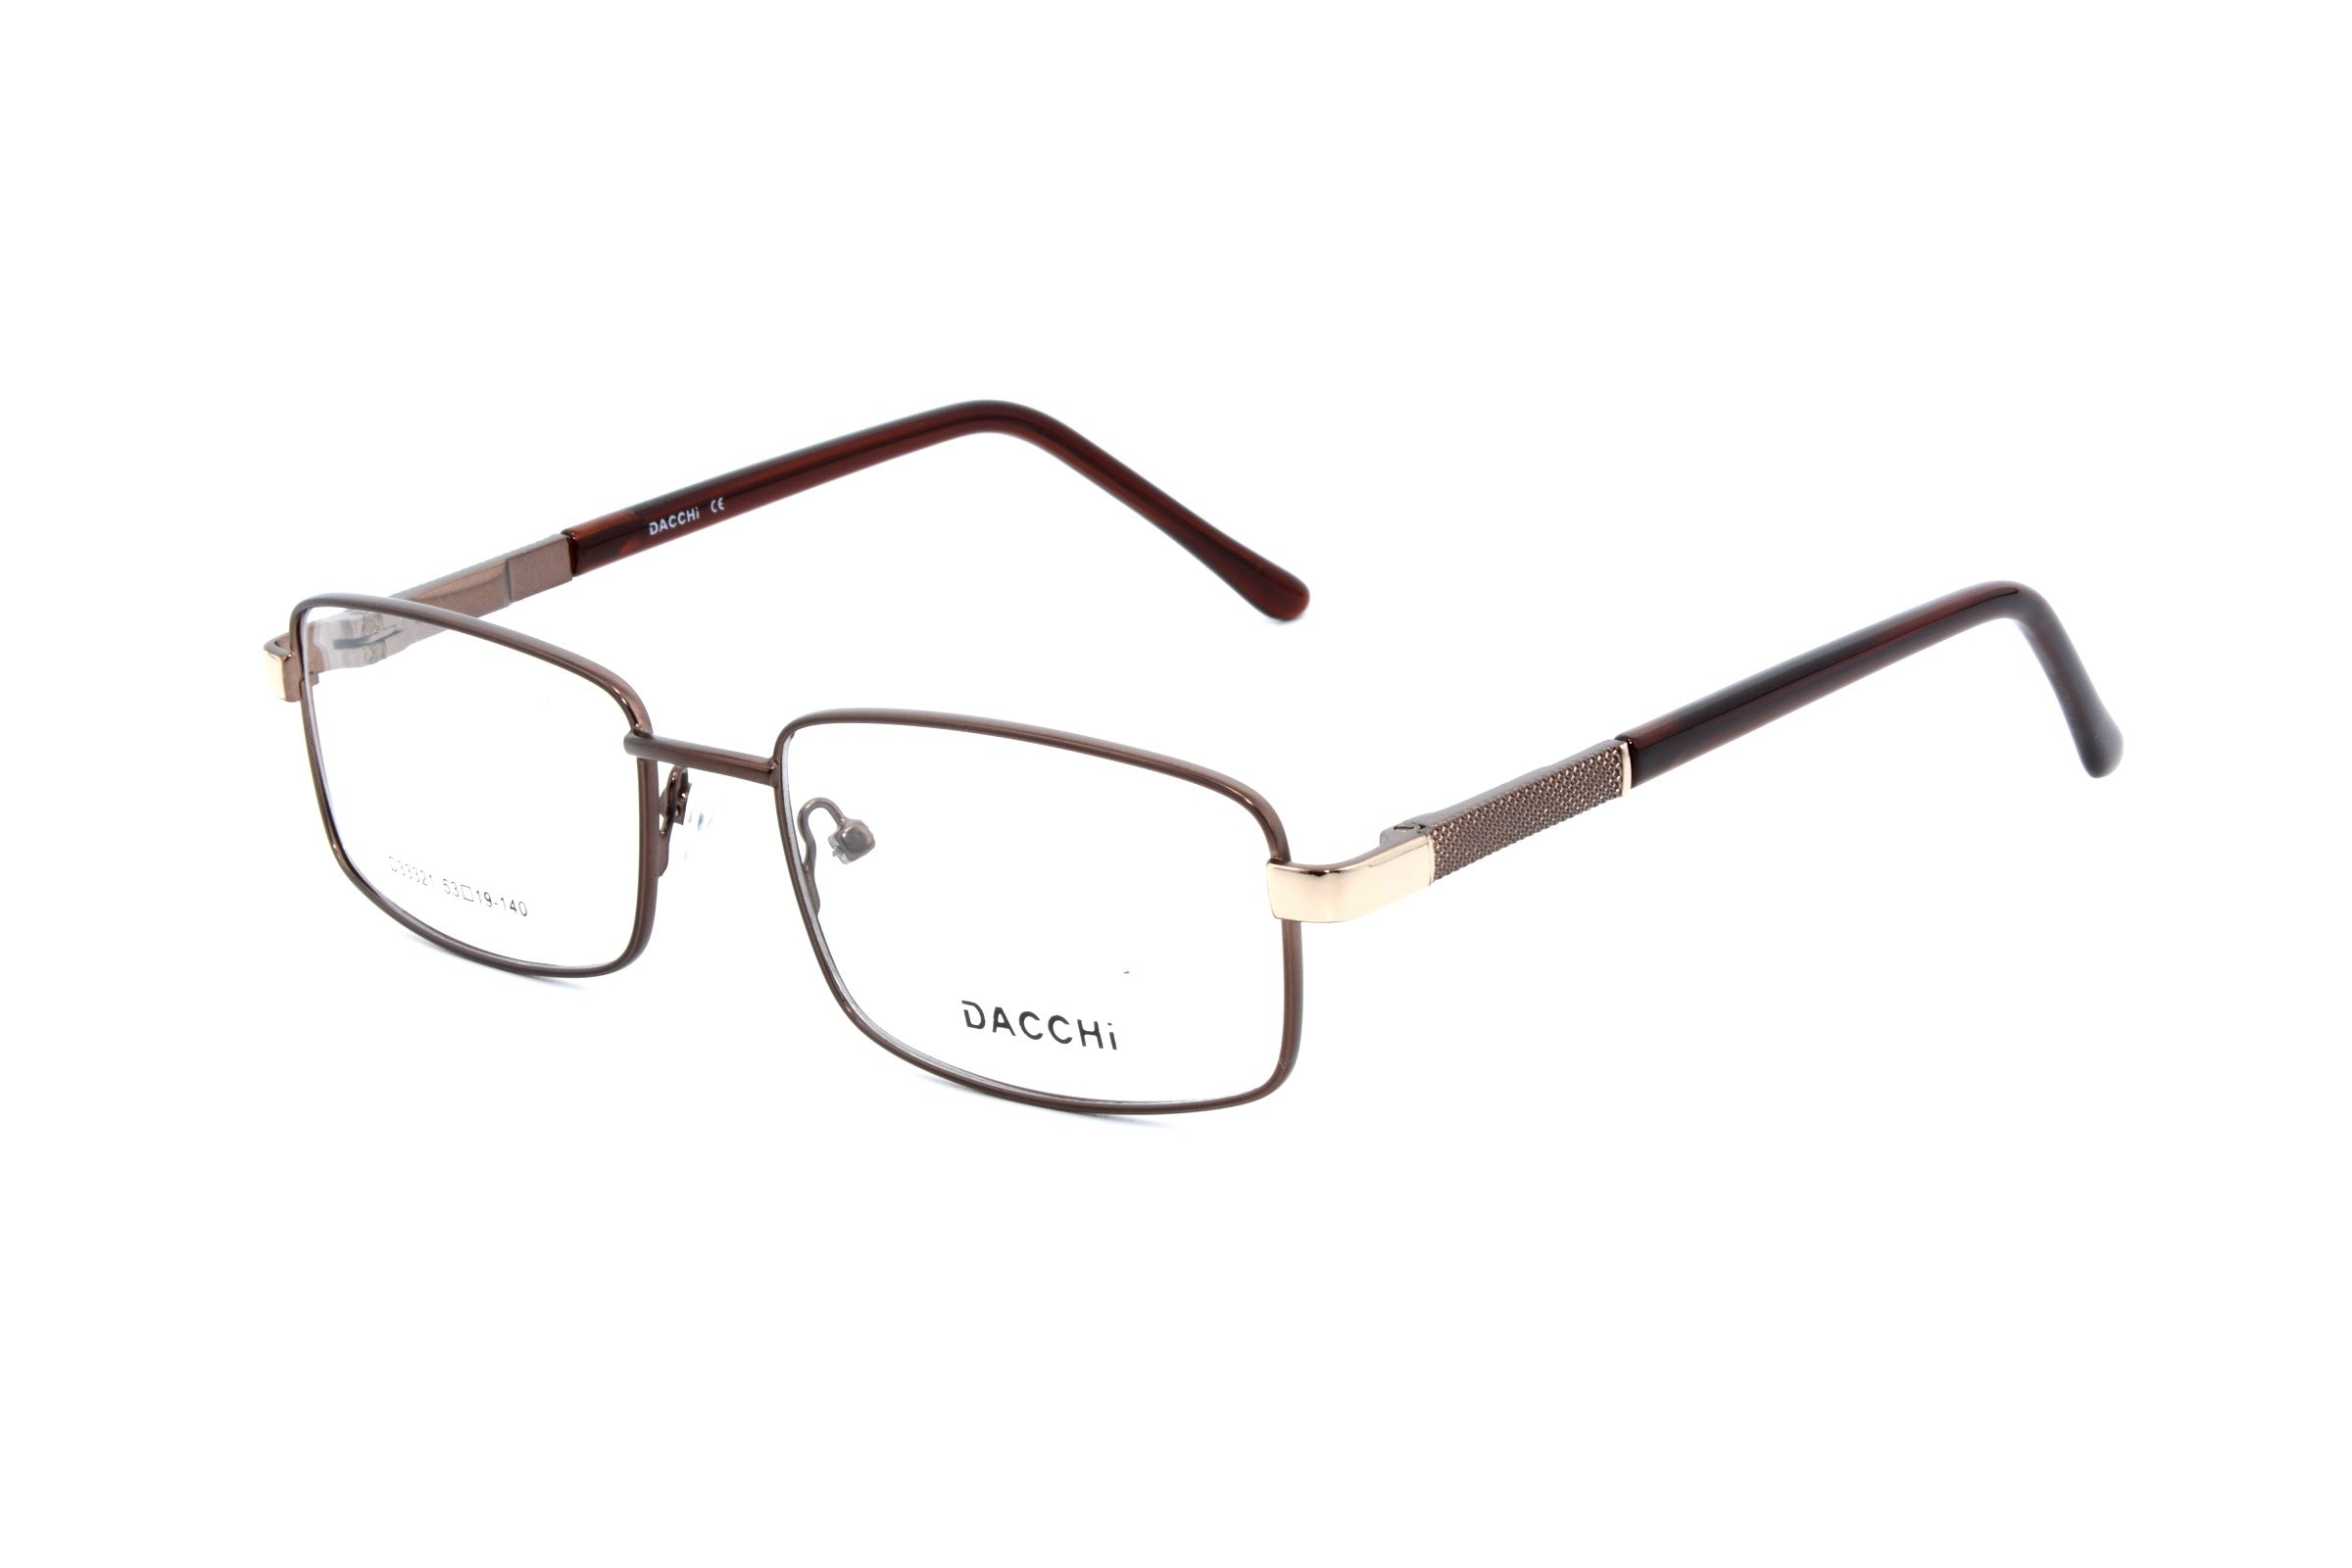 Dacchi eyewear 33321, C4 - Optics Trading